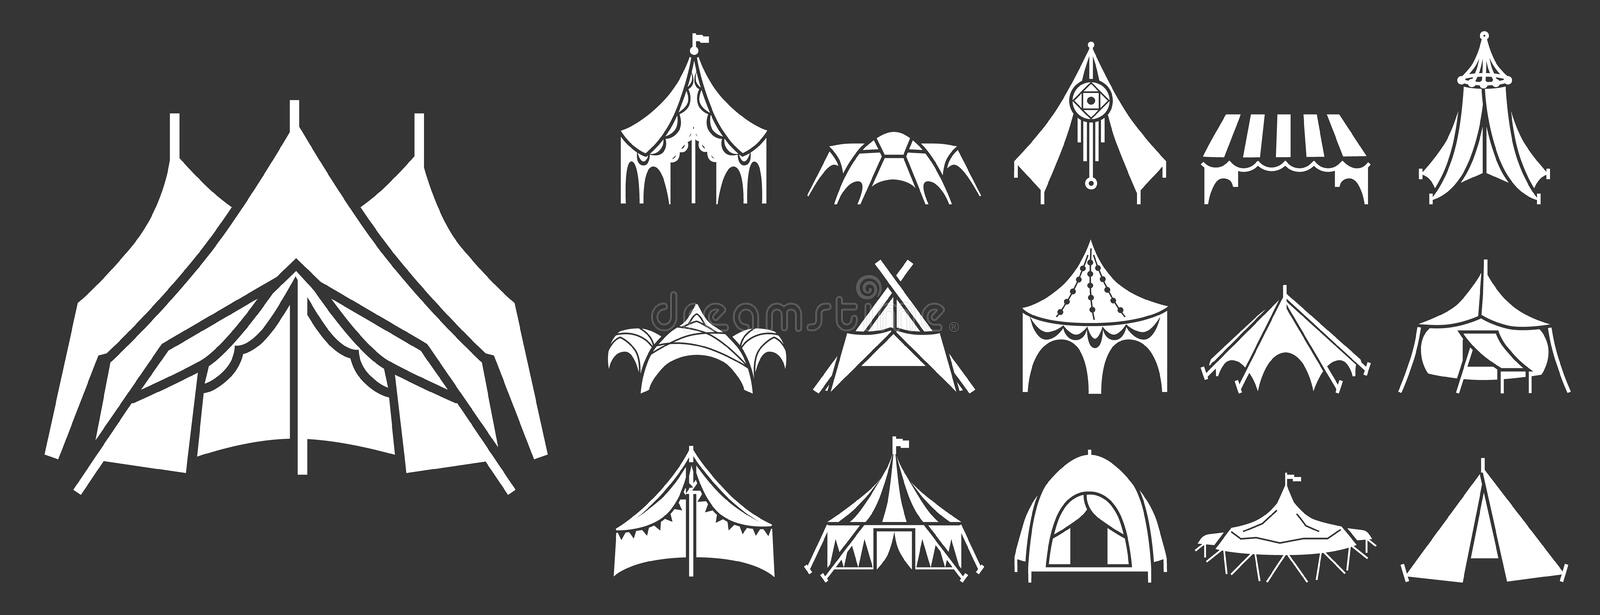 Canopy icon set, simple style stock illustration